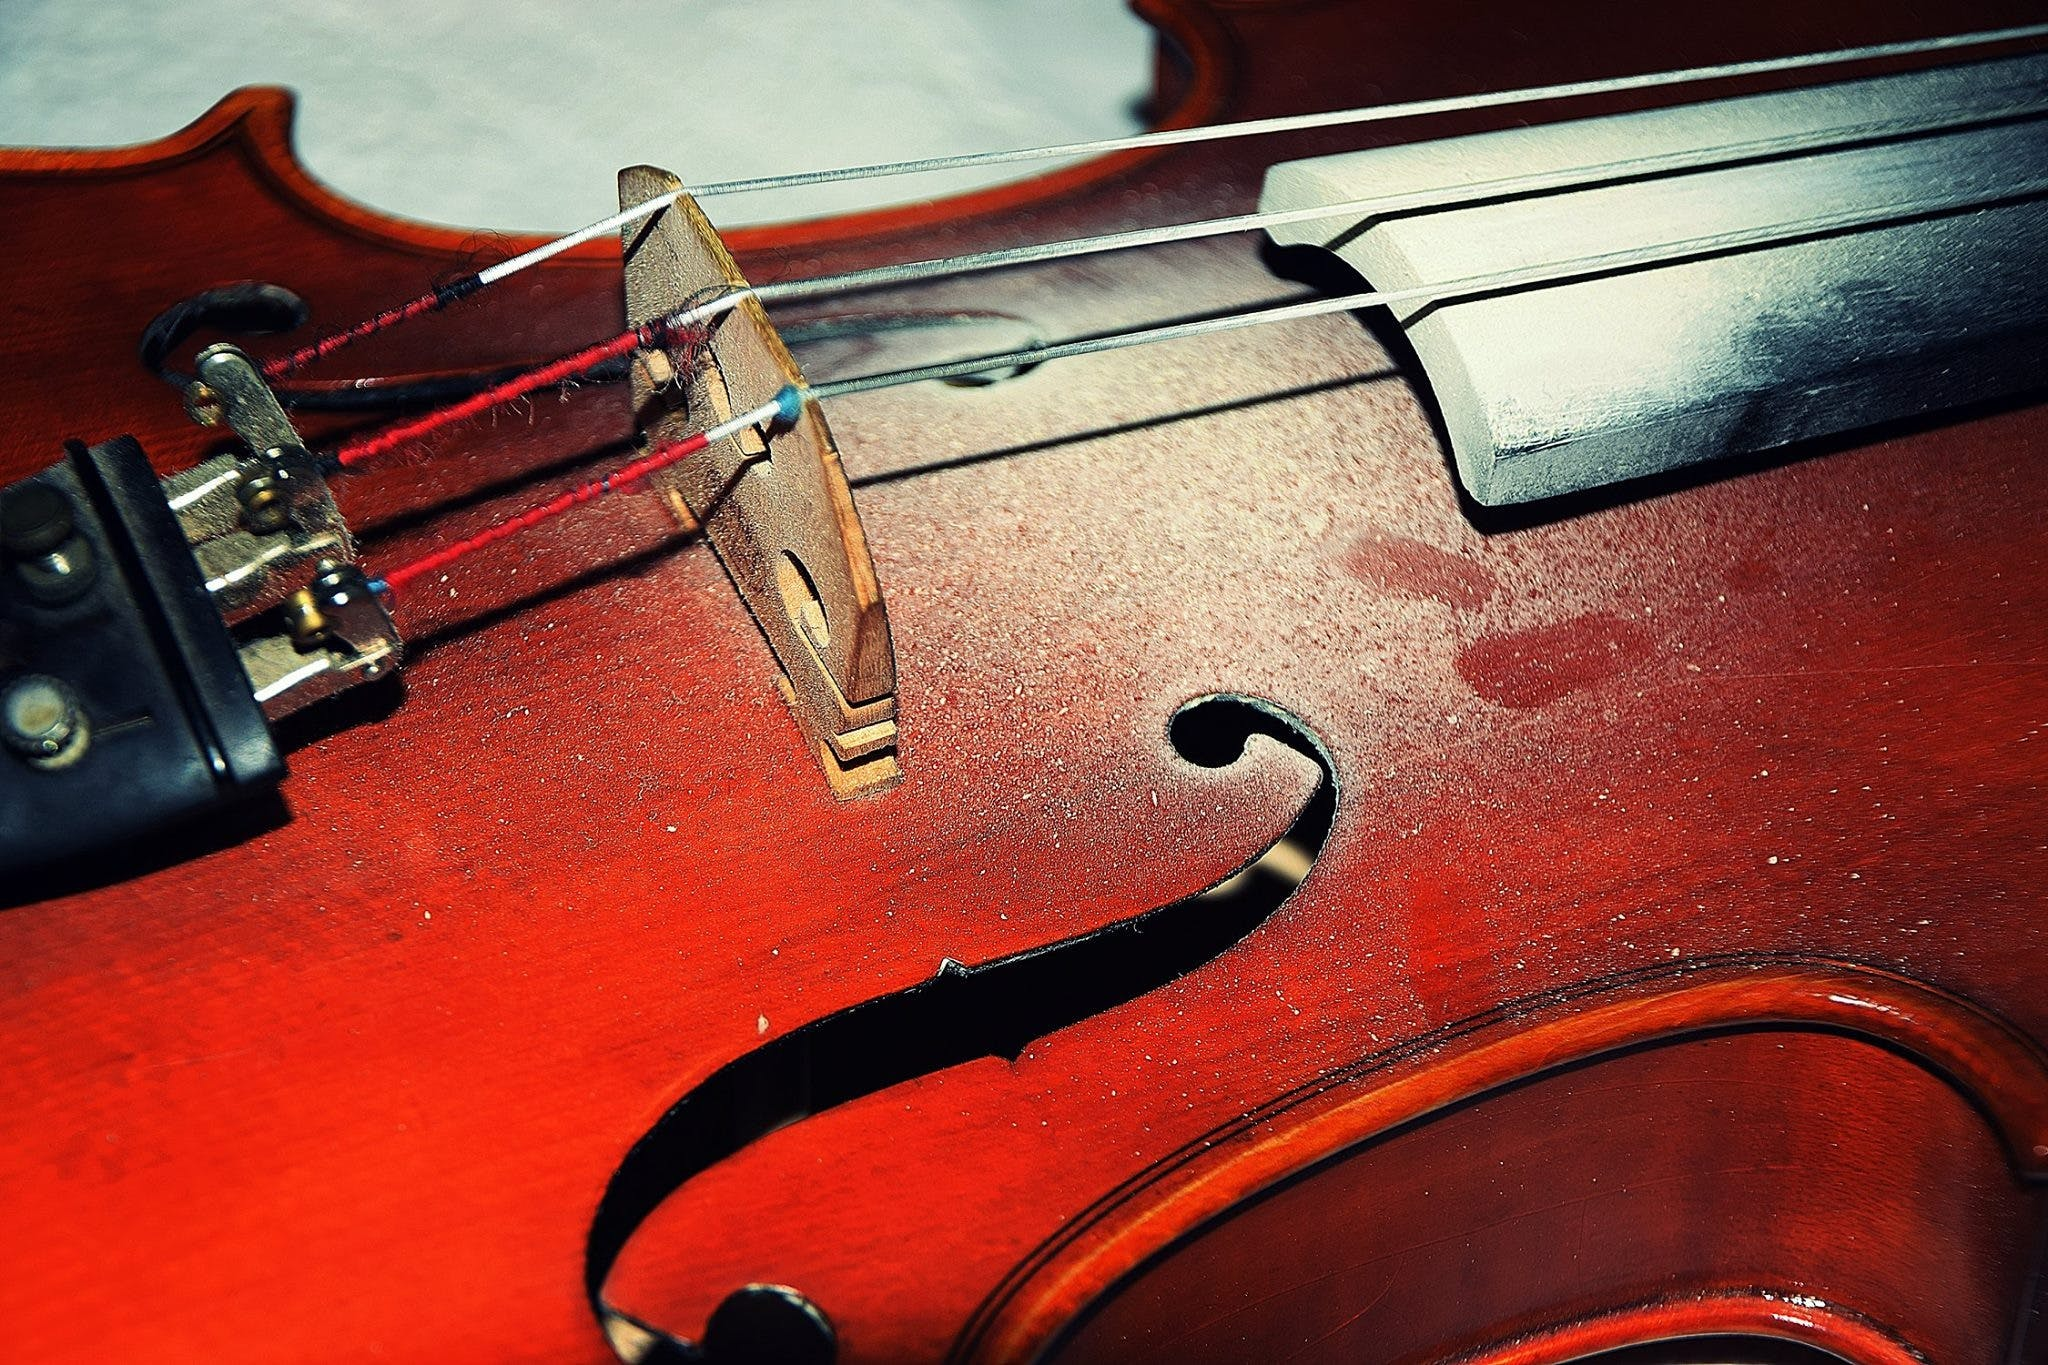 Free stock photo of violin, string, classical music, old violin